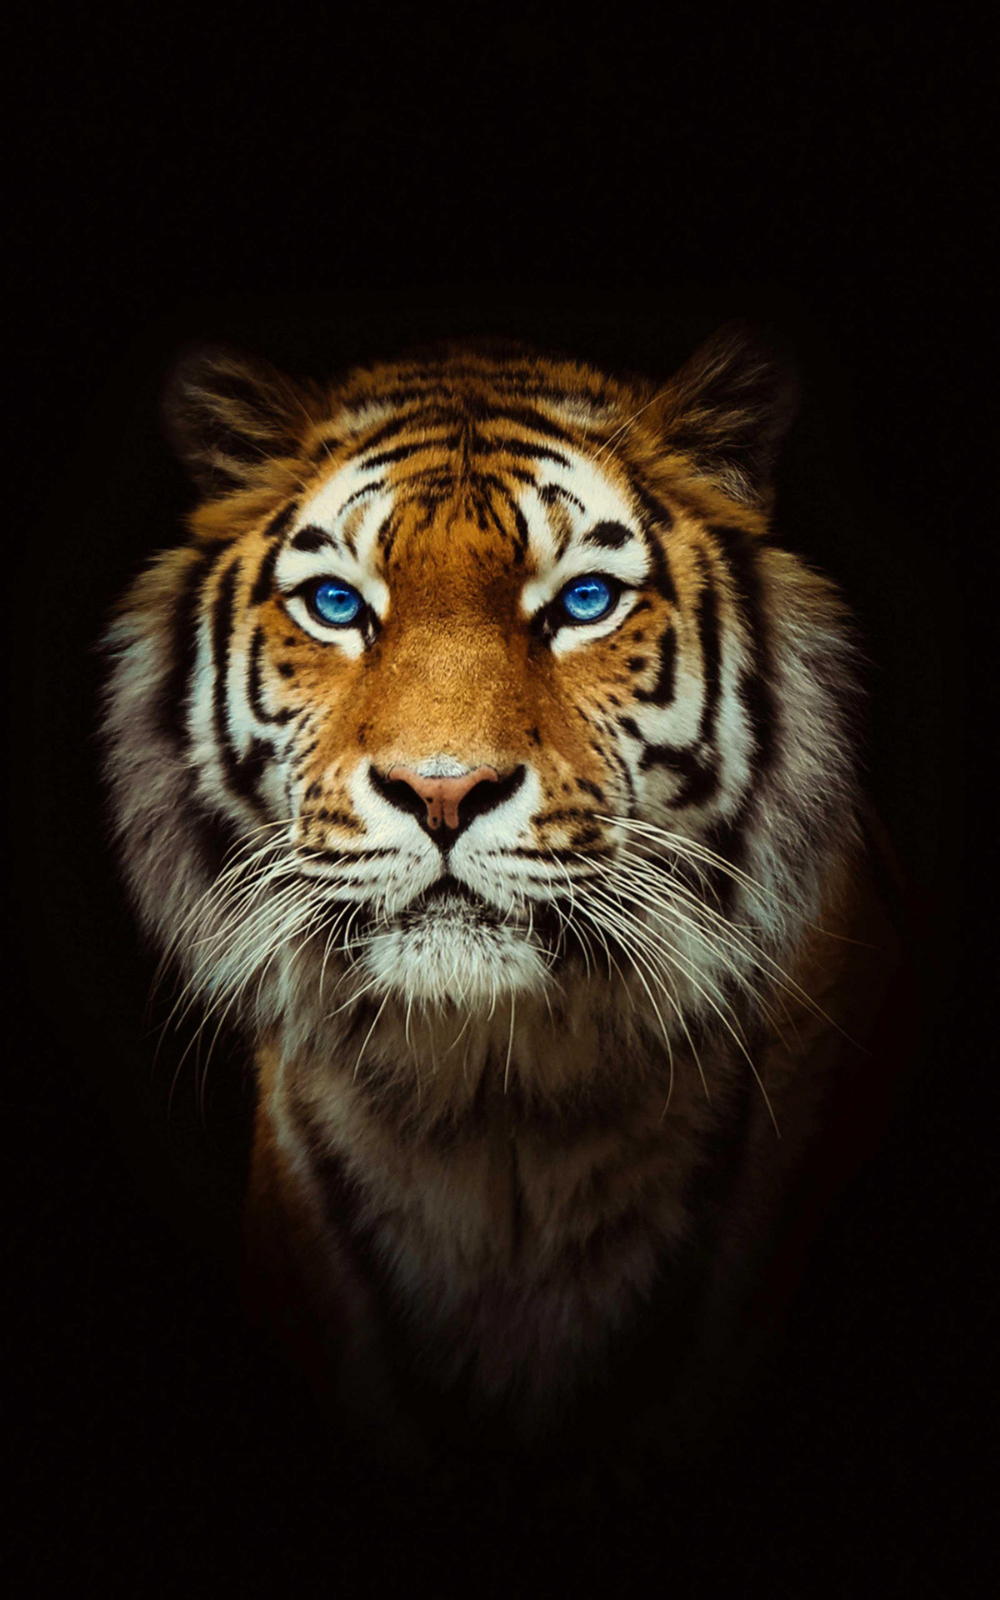 Tiger Wallpaper 4k Best Cool Tiger Wallpapers for Android APK Download